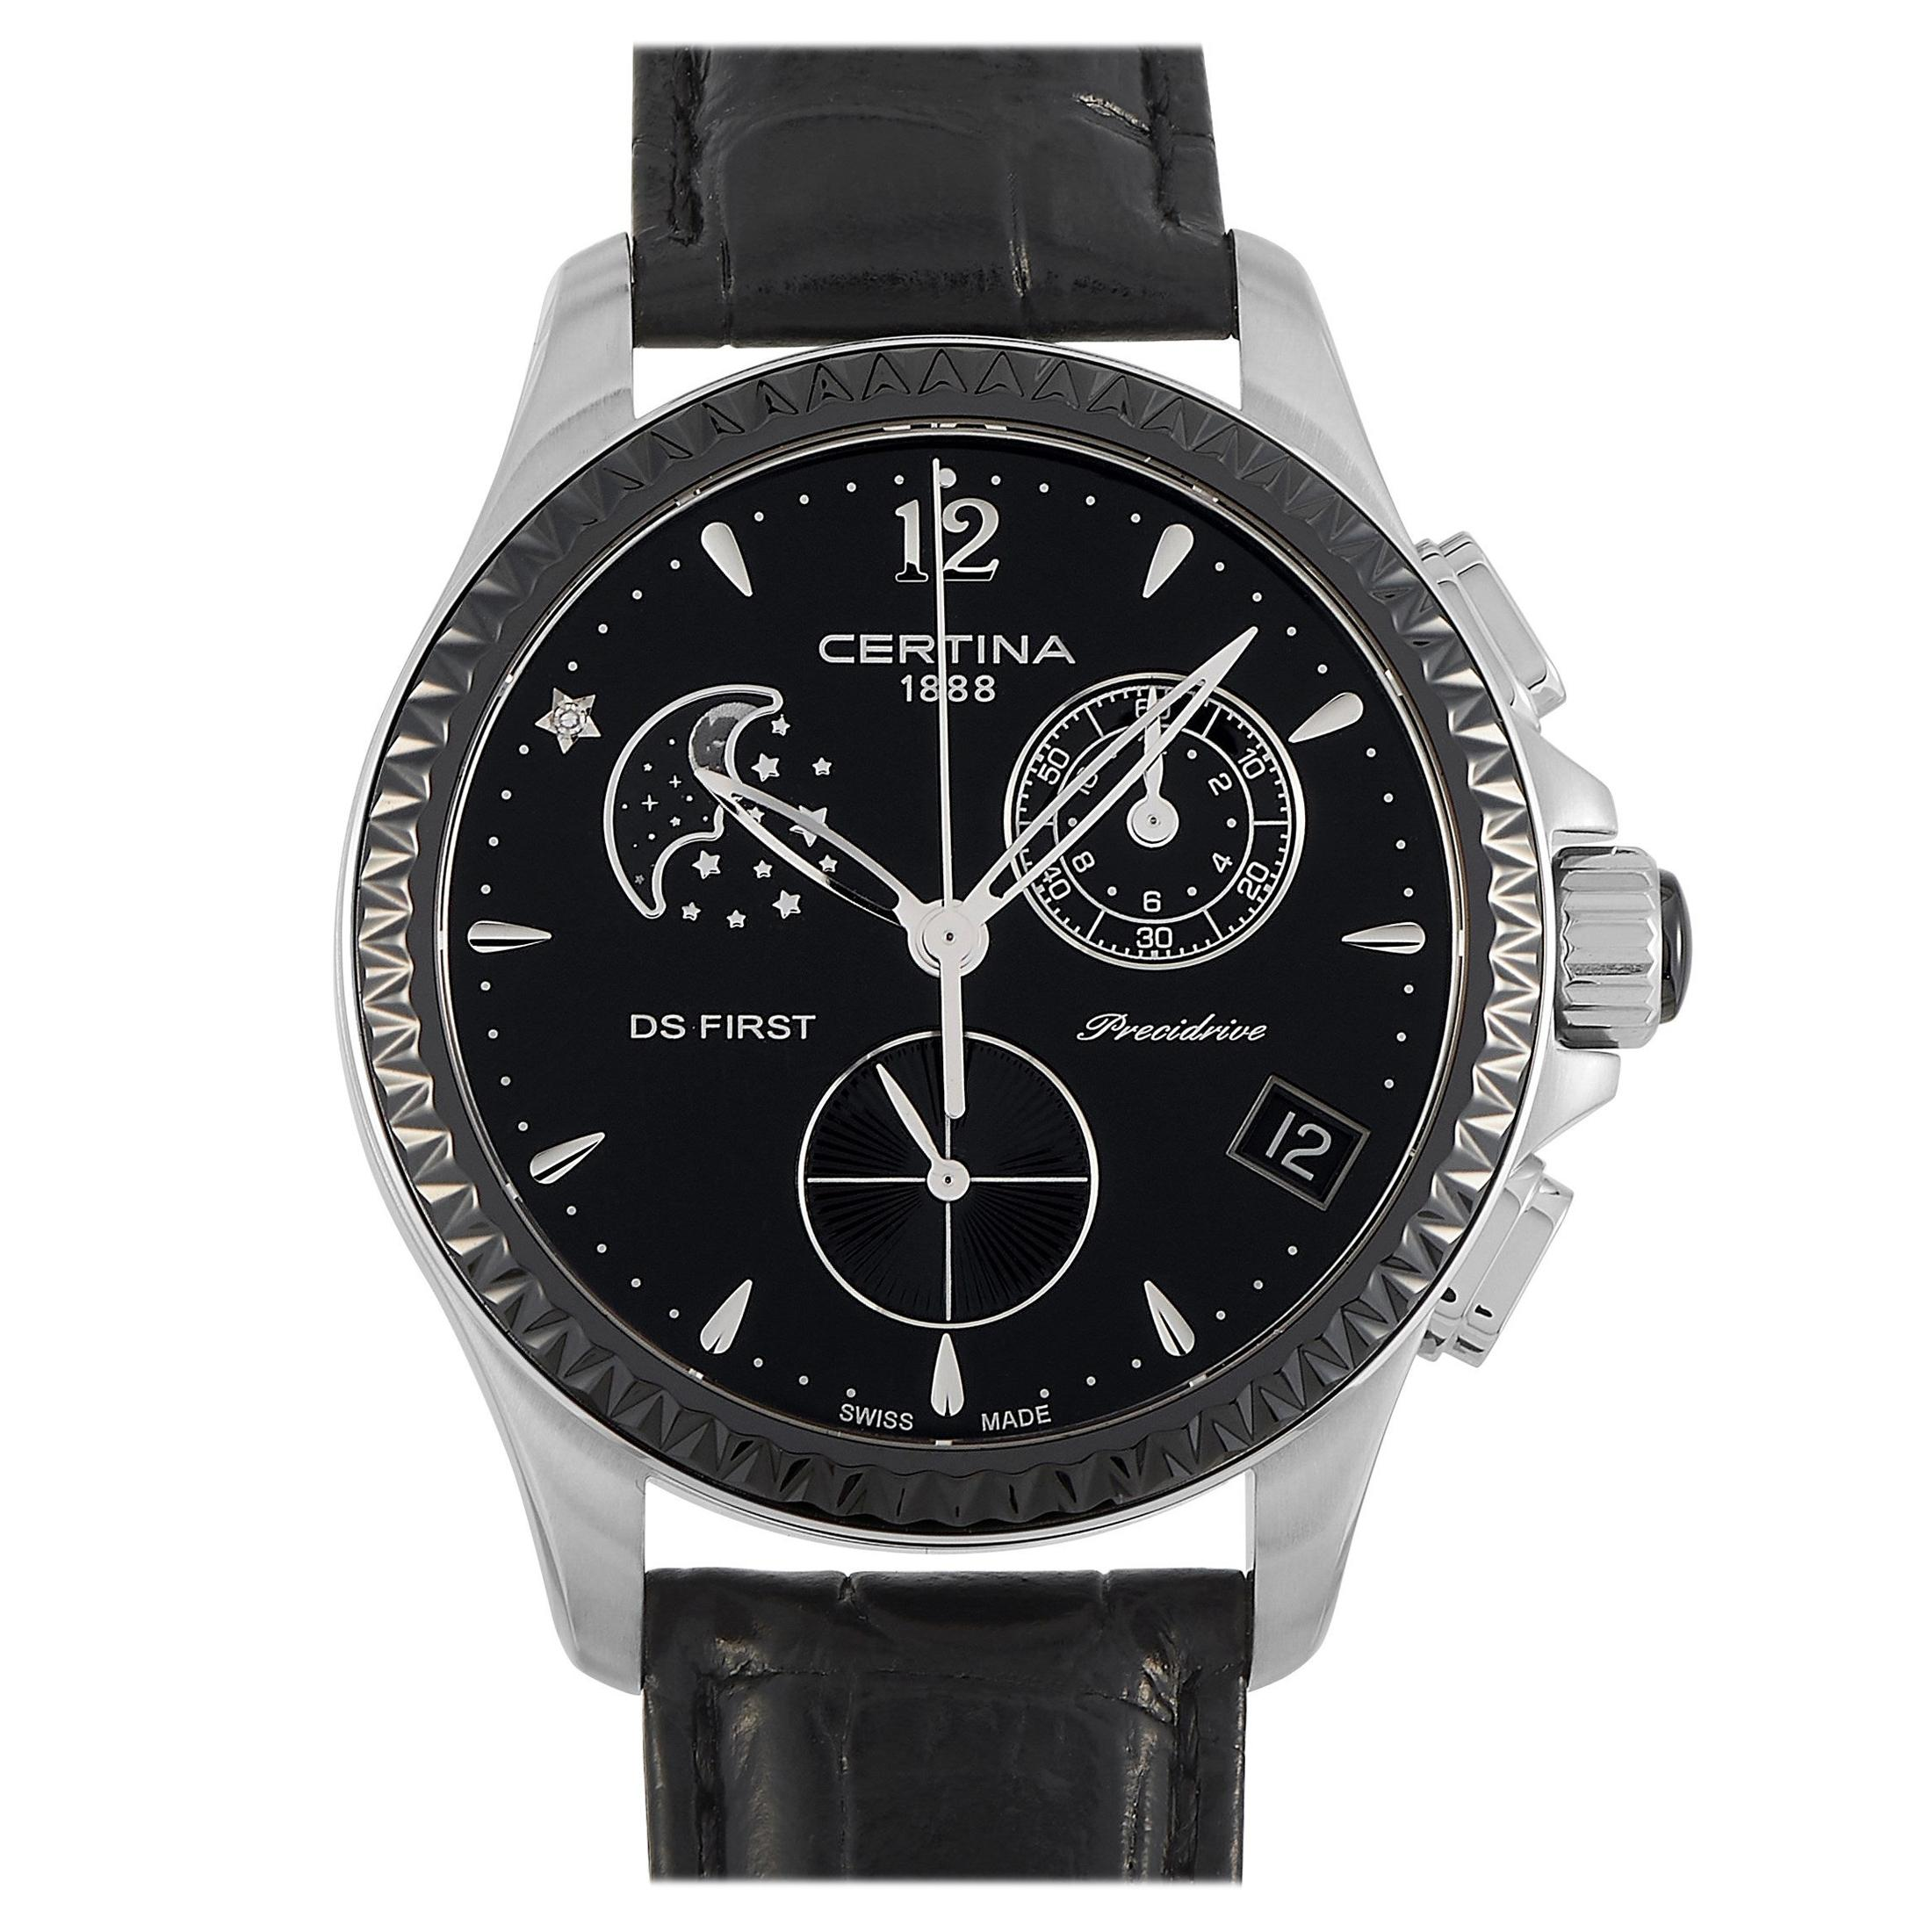 Certina DS First Chronograph Moonphase Black Dial Ladies Watch C030.250.16.056.0